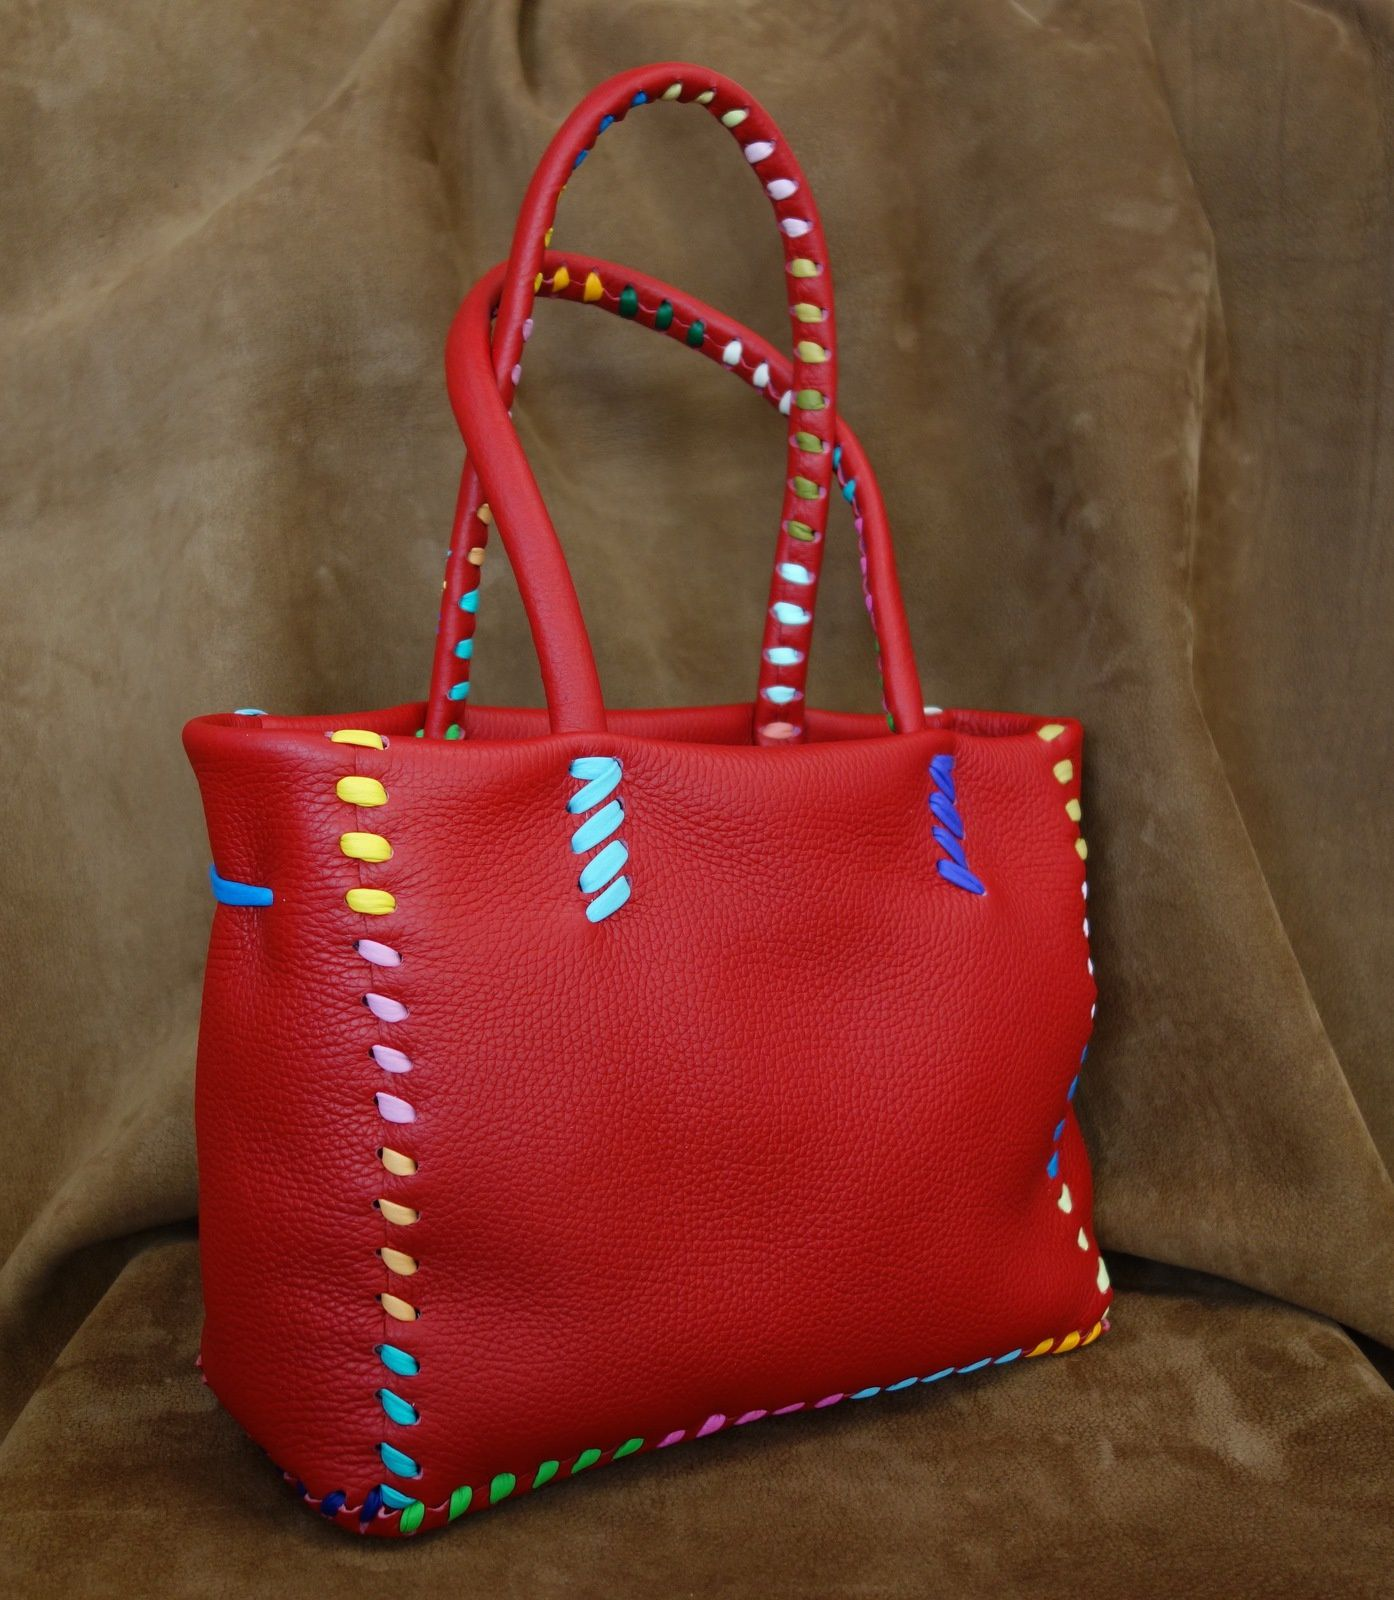 Sac lolotte rouge multicolore